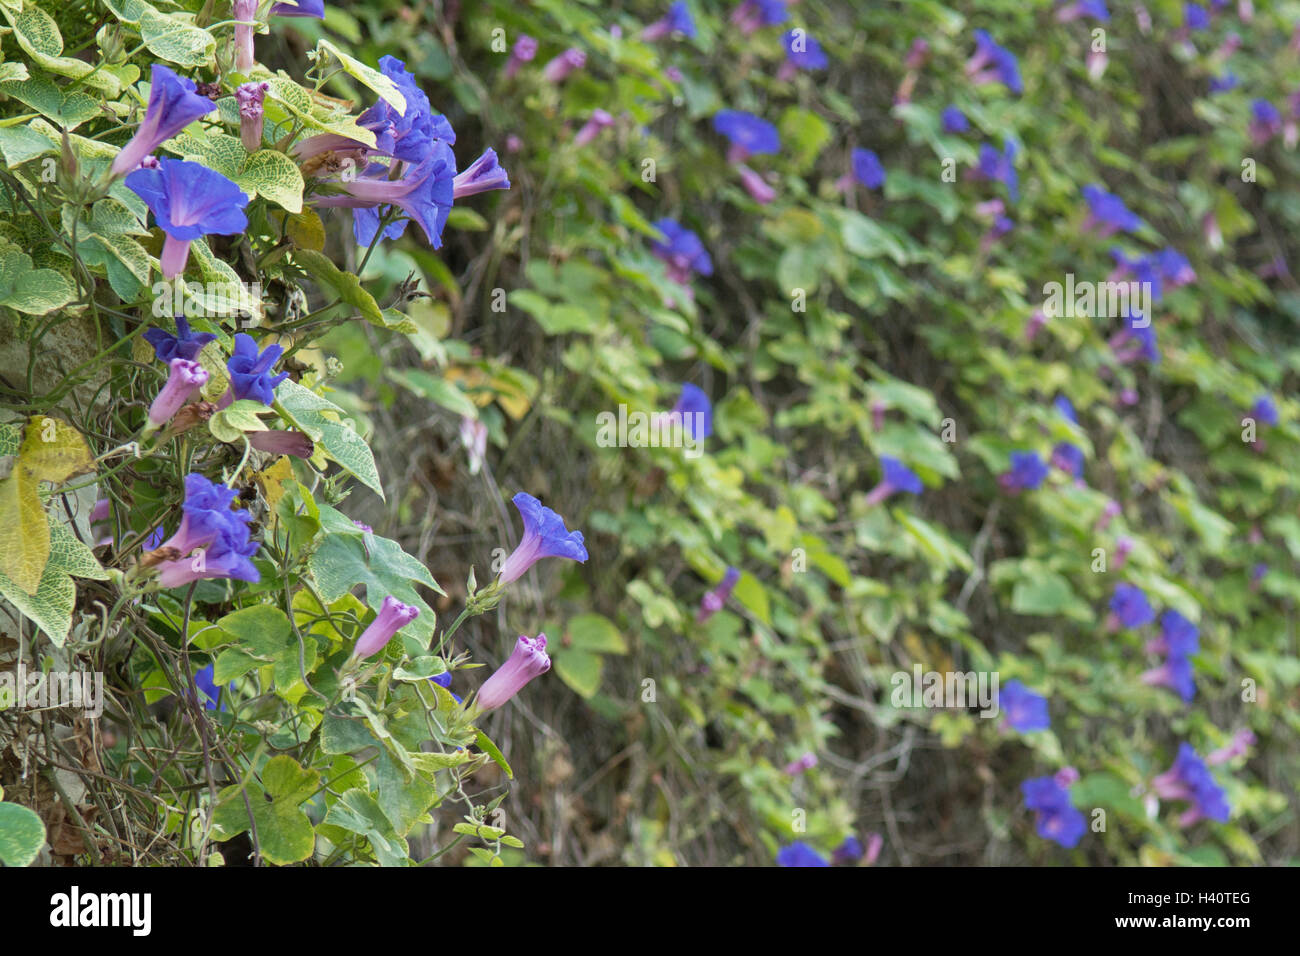 Ipomoea - Morning Glory - blue - covering a large wall in Paxos, Greece - Stock Image